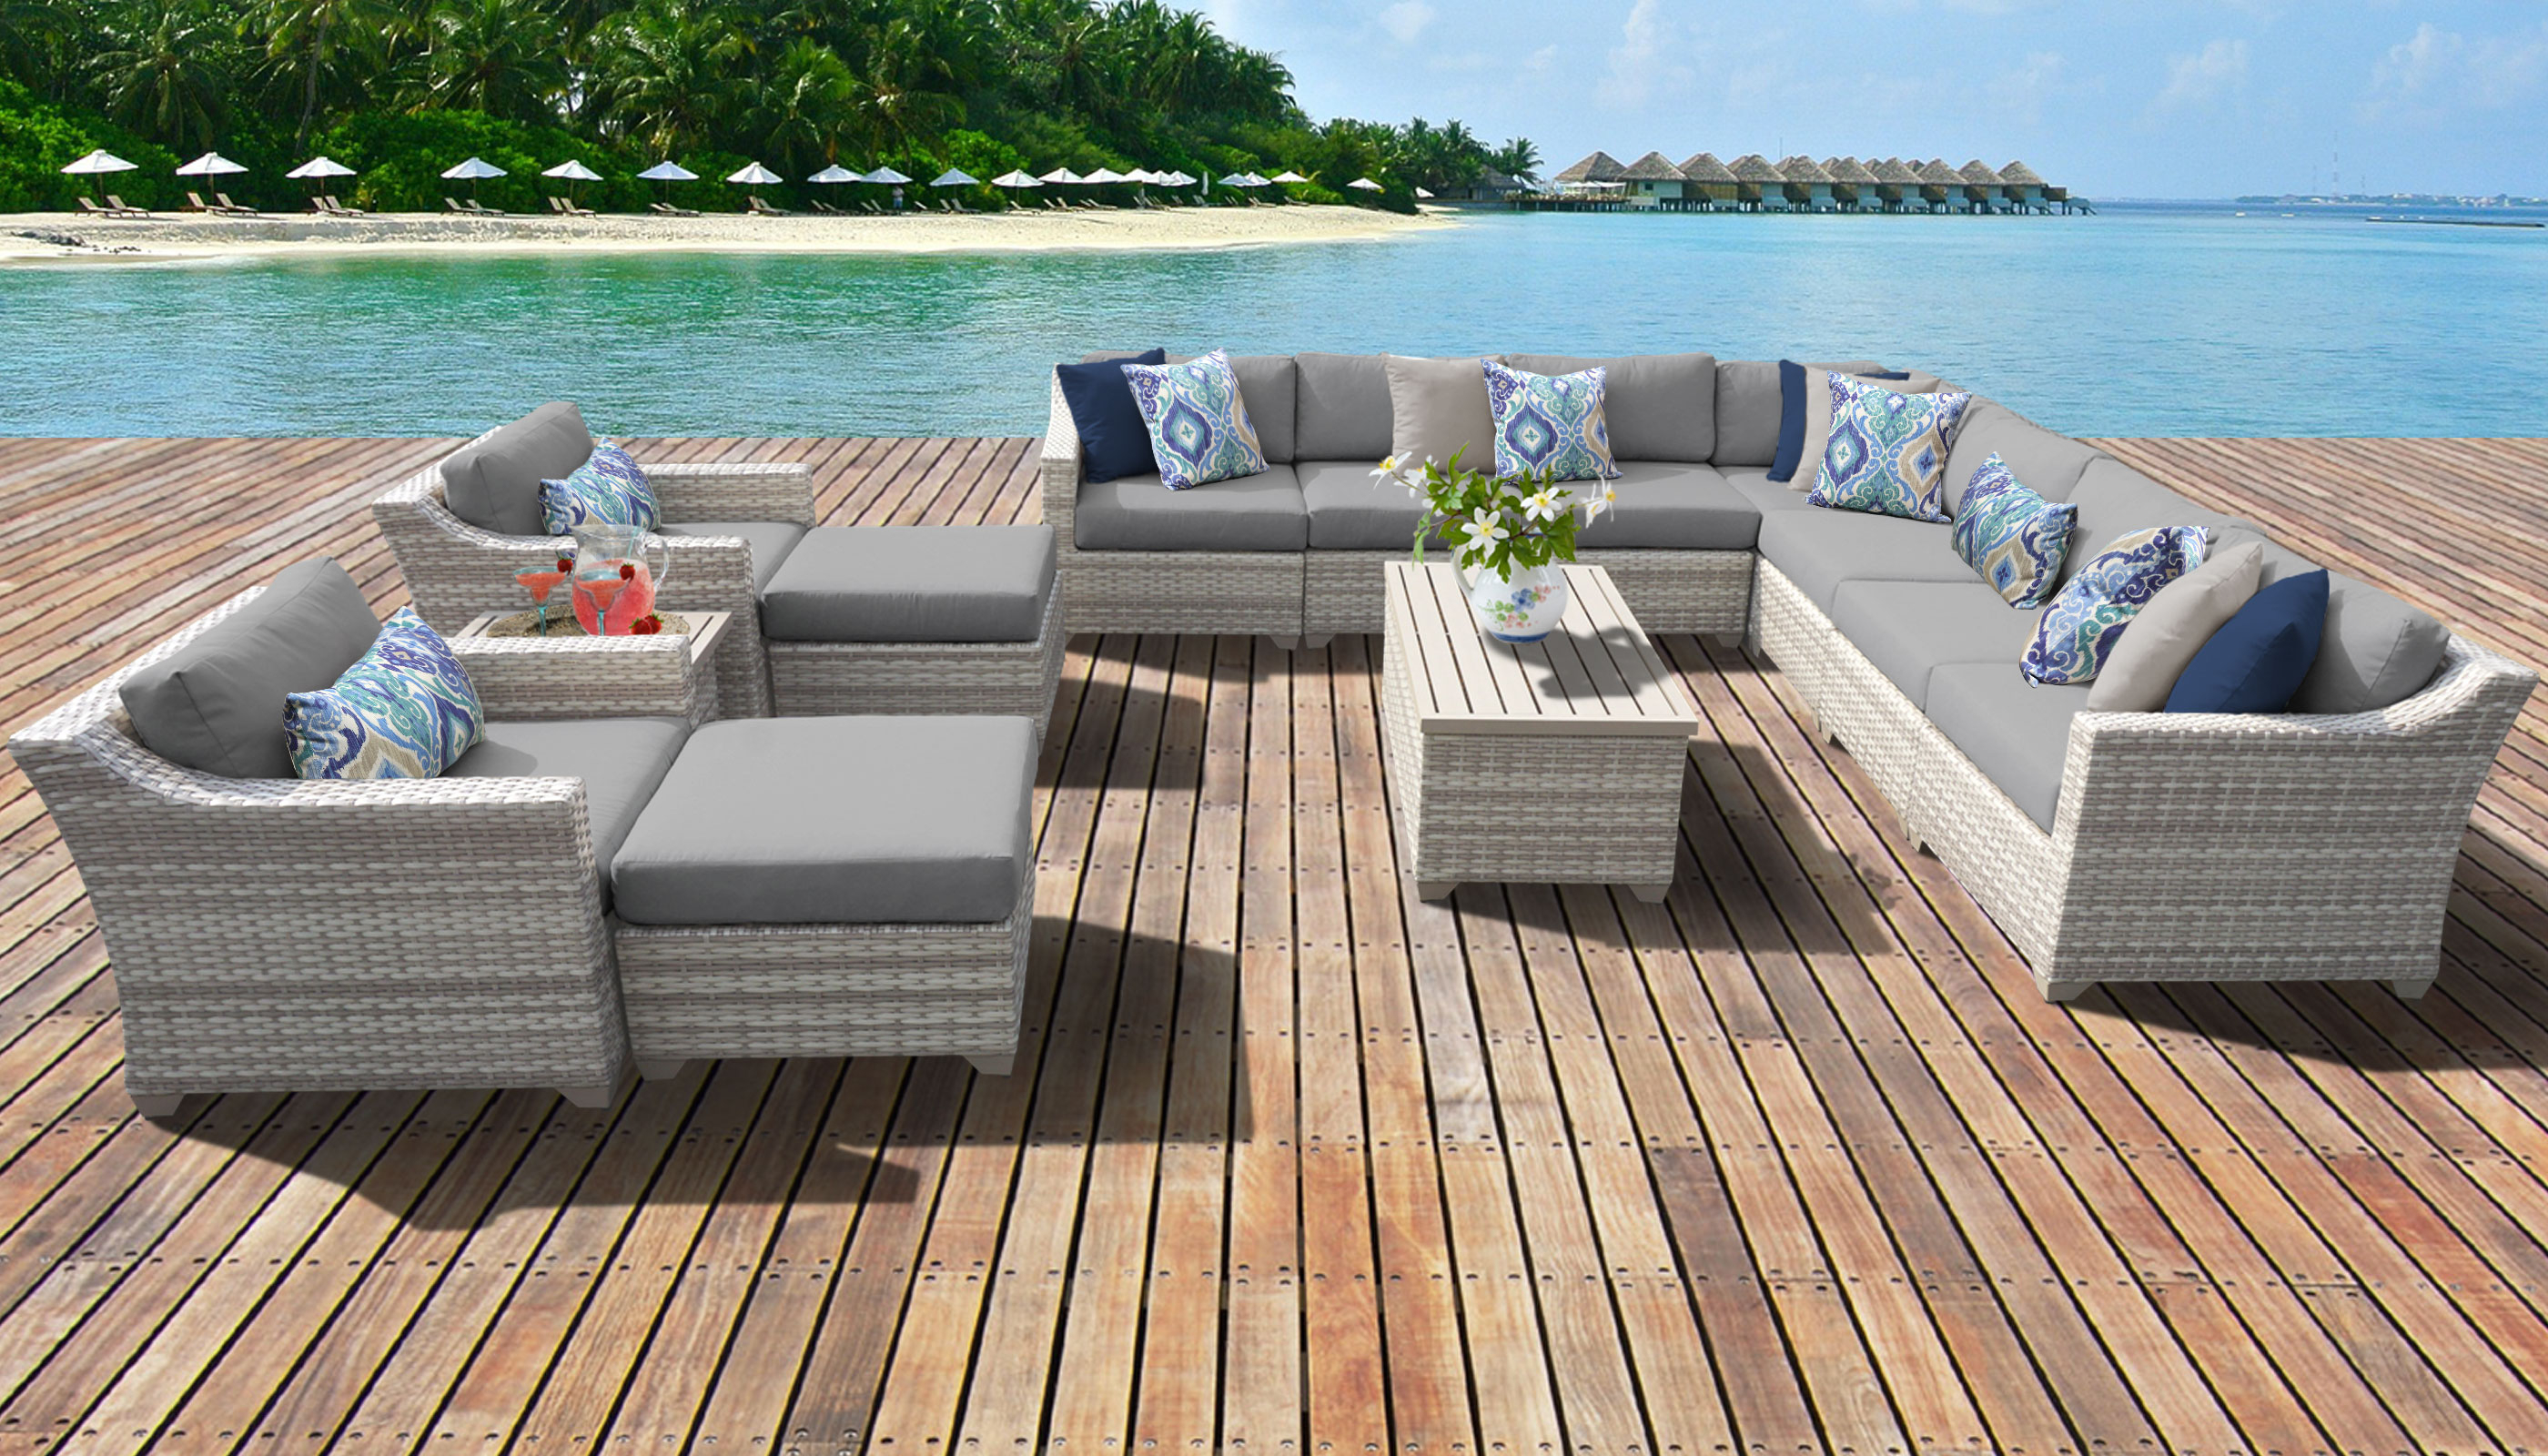 Latest Fairmont 13 Piece Outdoor Wicker Patio Furniture Set 13a With Regard To Outdoor 13 Piece Wicker Patio Sets With Cushions (View 12 of 25)